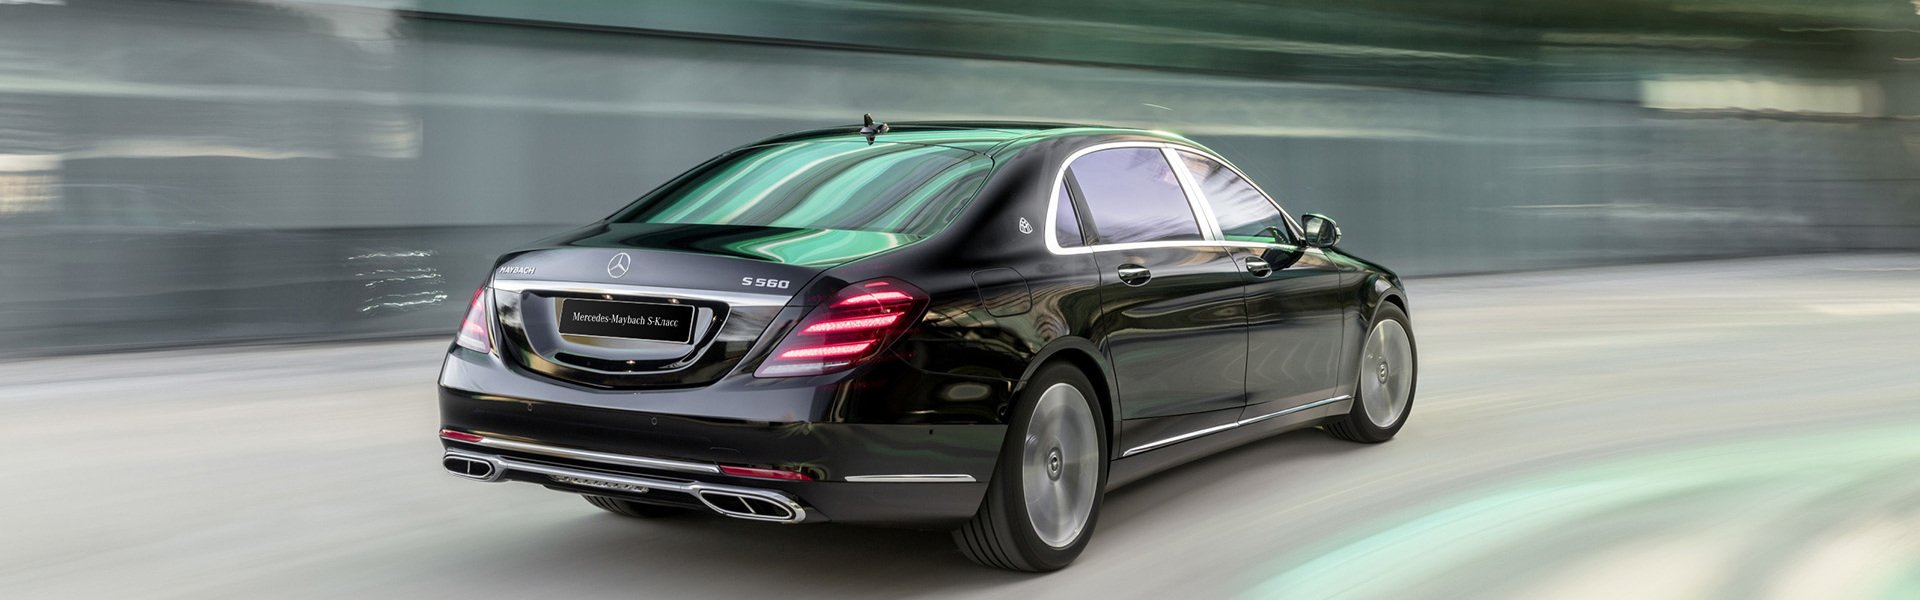 Mercedes-AMG S-Класс Maybach